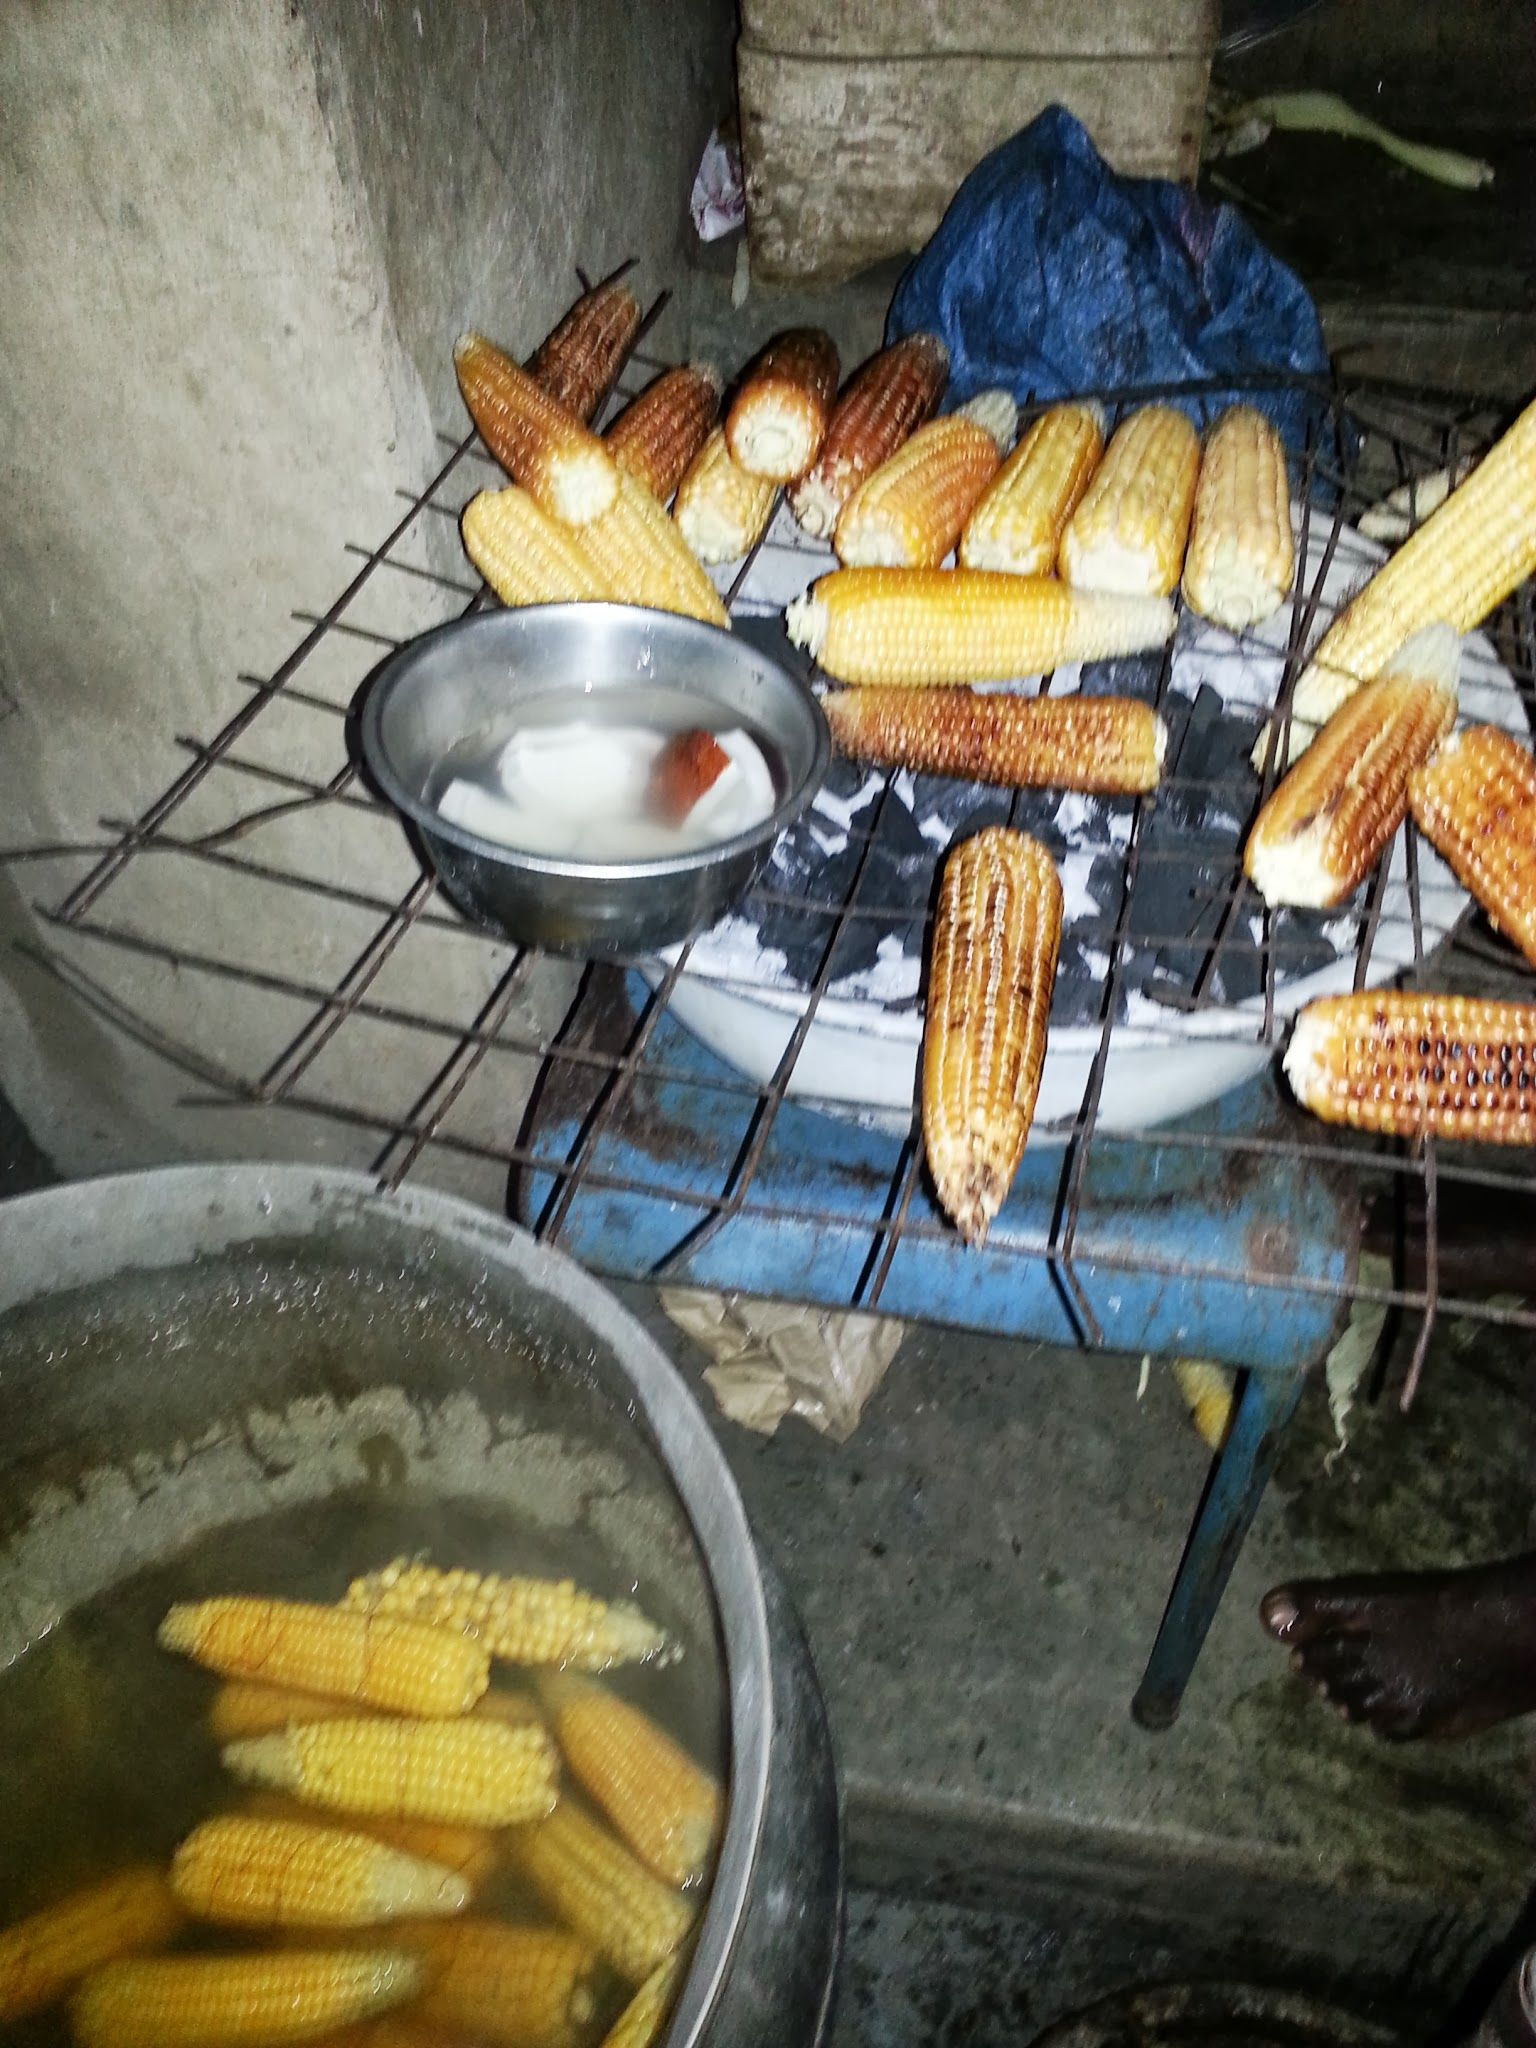 Roasted corn and boiled corn is a common snack in Nigeria that goes well with soaked coconuts--KOO